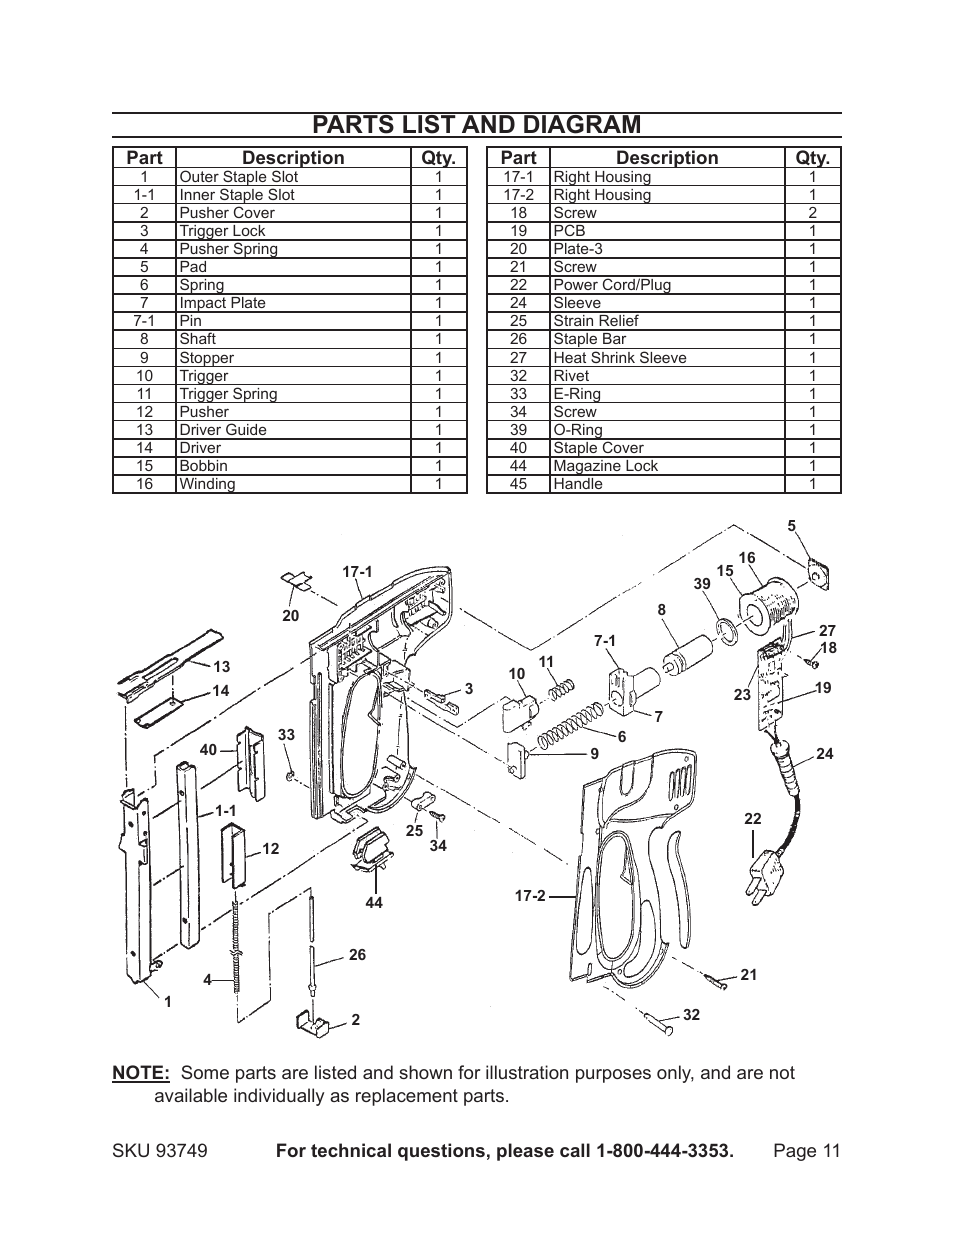 parts list and diagram